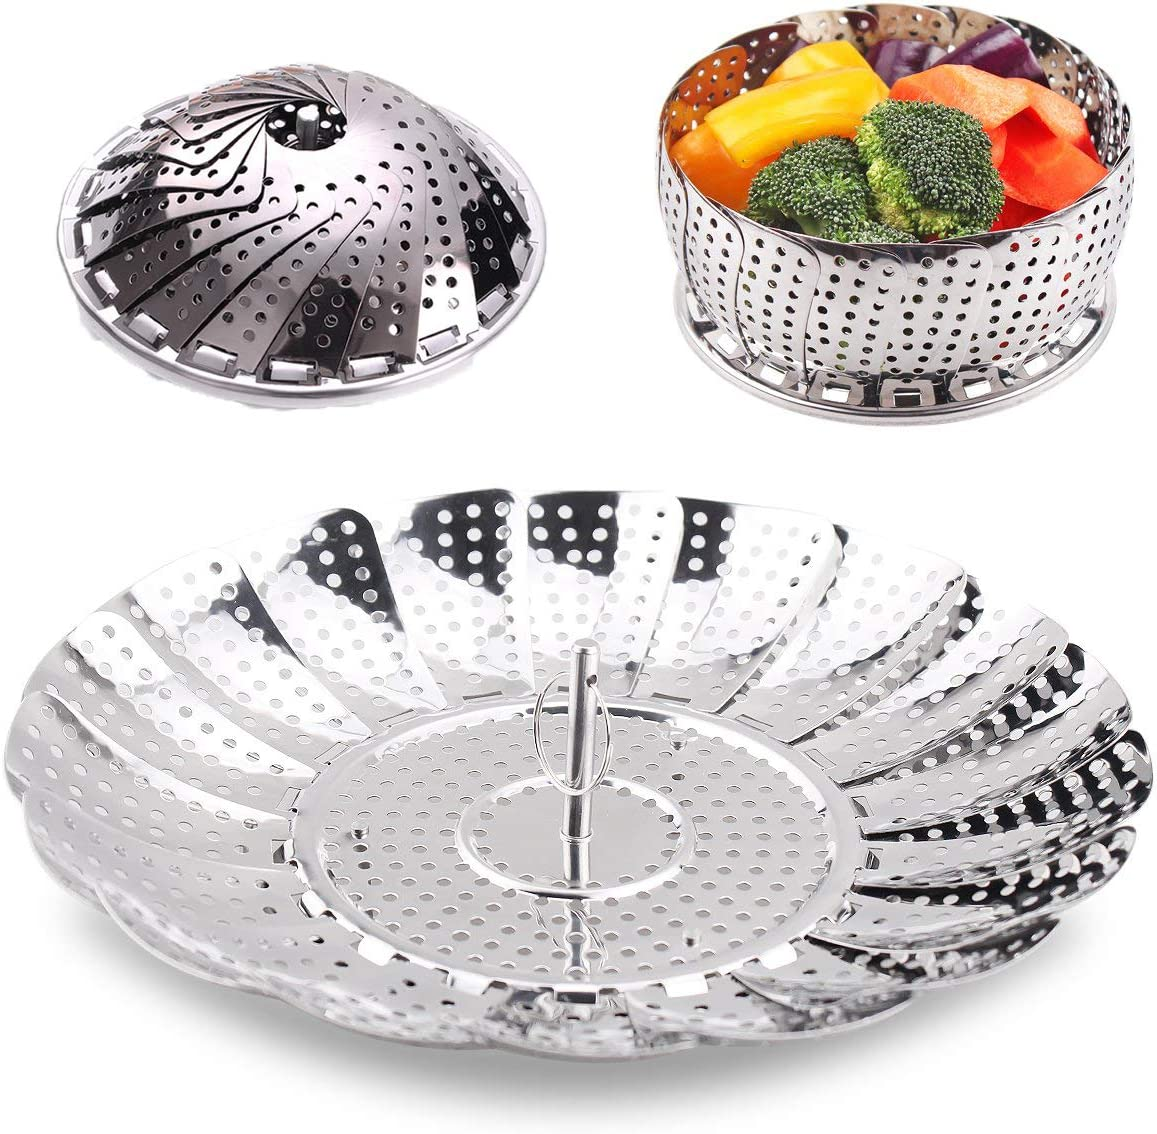 Vegetables Steamer Basket Stainless Steel Steamer Inserts for Pot, Pans, Crock And Pot Steamer For Fish, Veggie, eggs and Seafood.(6.5 inch to 10.5 inch Diameter)